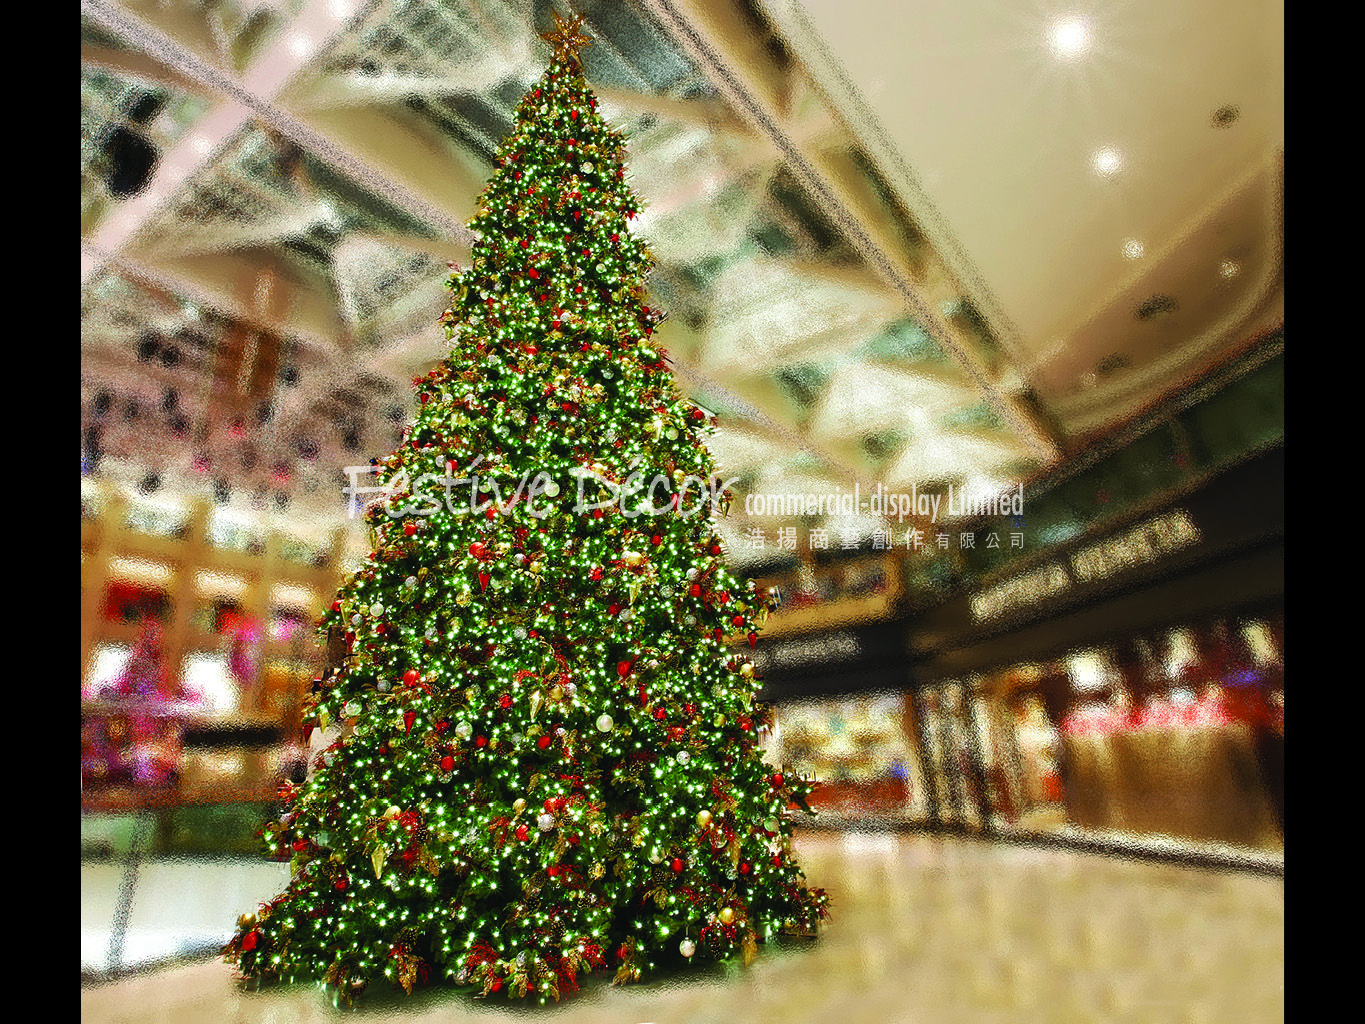 Christmas Tree Decoration And Installation In Hong Kong For Indoor Display Christmas Tree Decorations Christmas Tree Tree Decorations